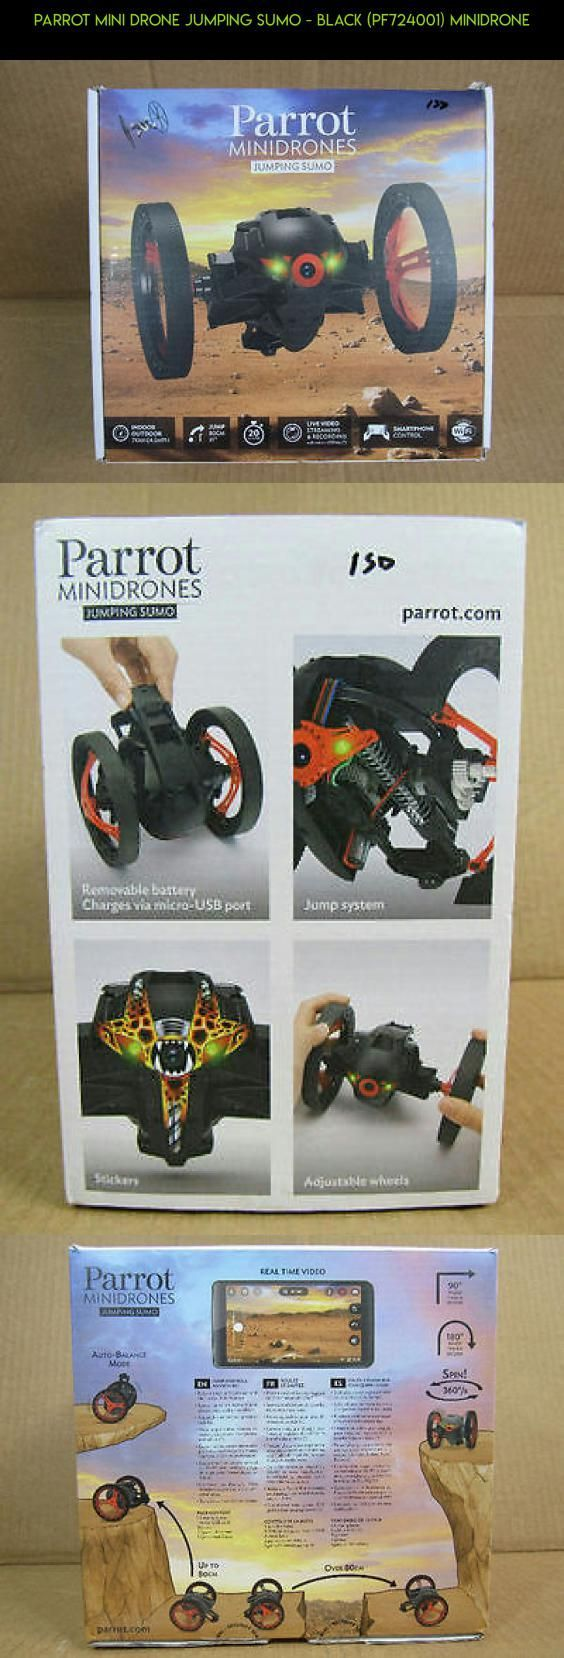 Parrot Mini Drone Jumping Sumo - Black (PF724001) MiniDrone #drone #plans #shopping #parrot #parts #technology #racing #products #kit #gadgets #jumping #fpv #drone #camera #tech